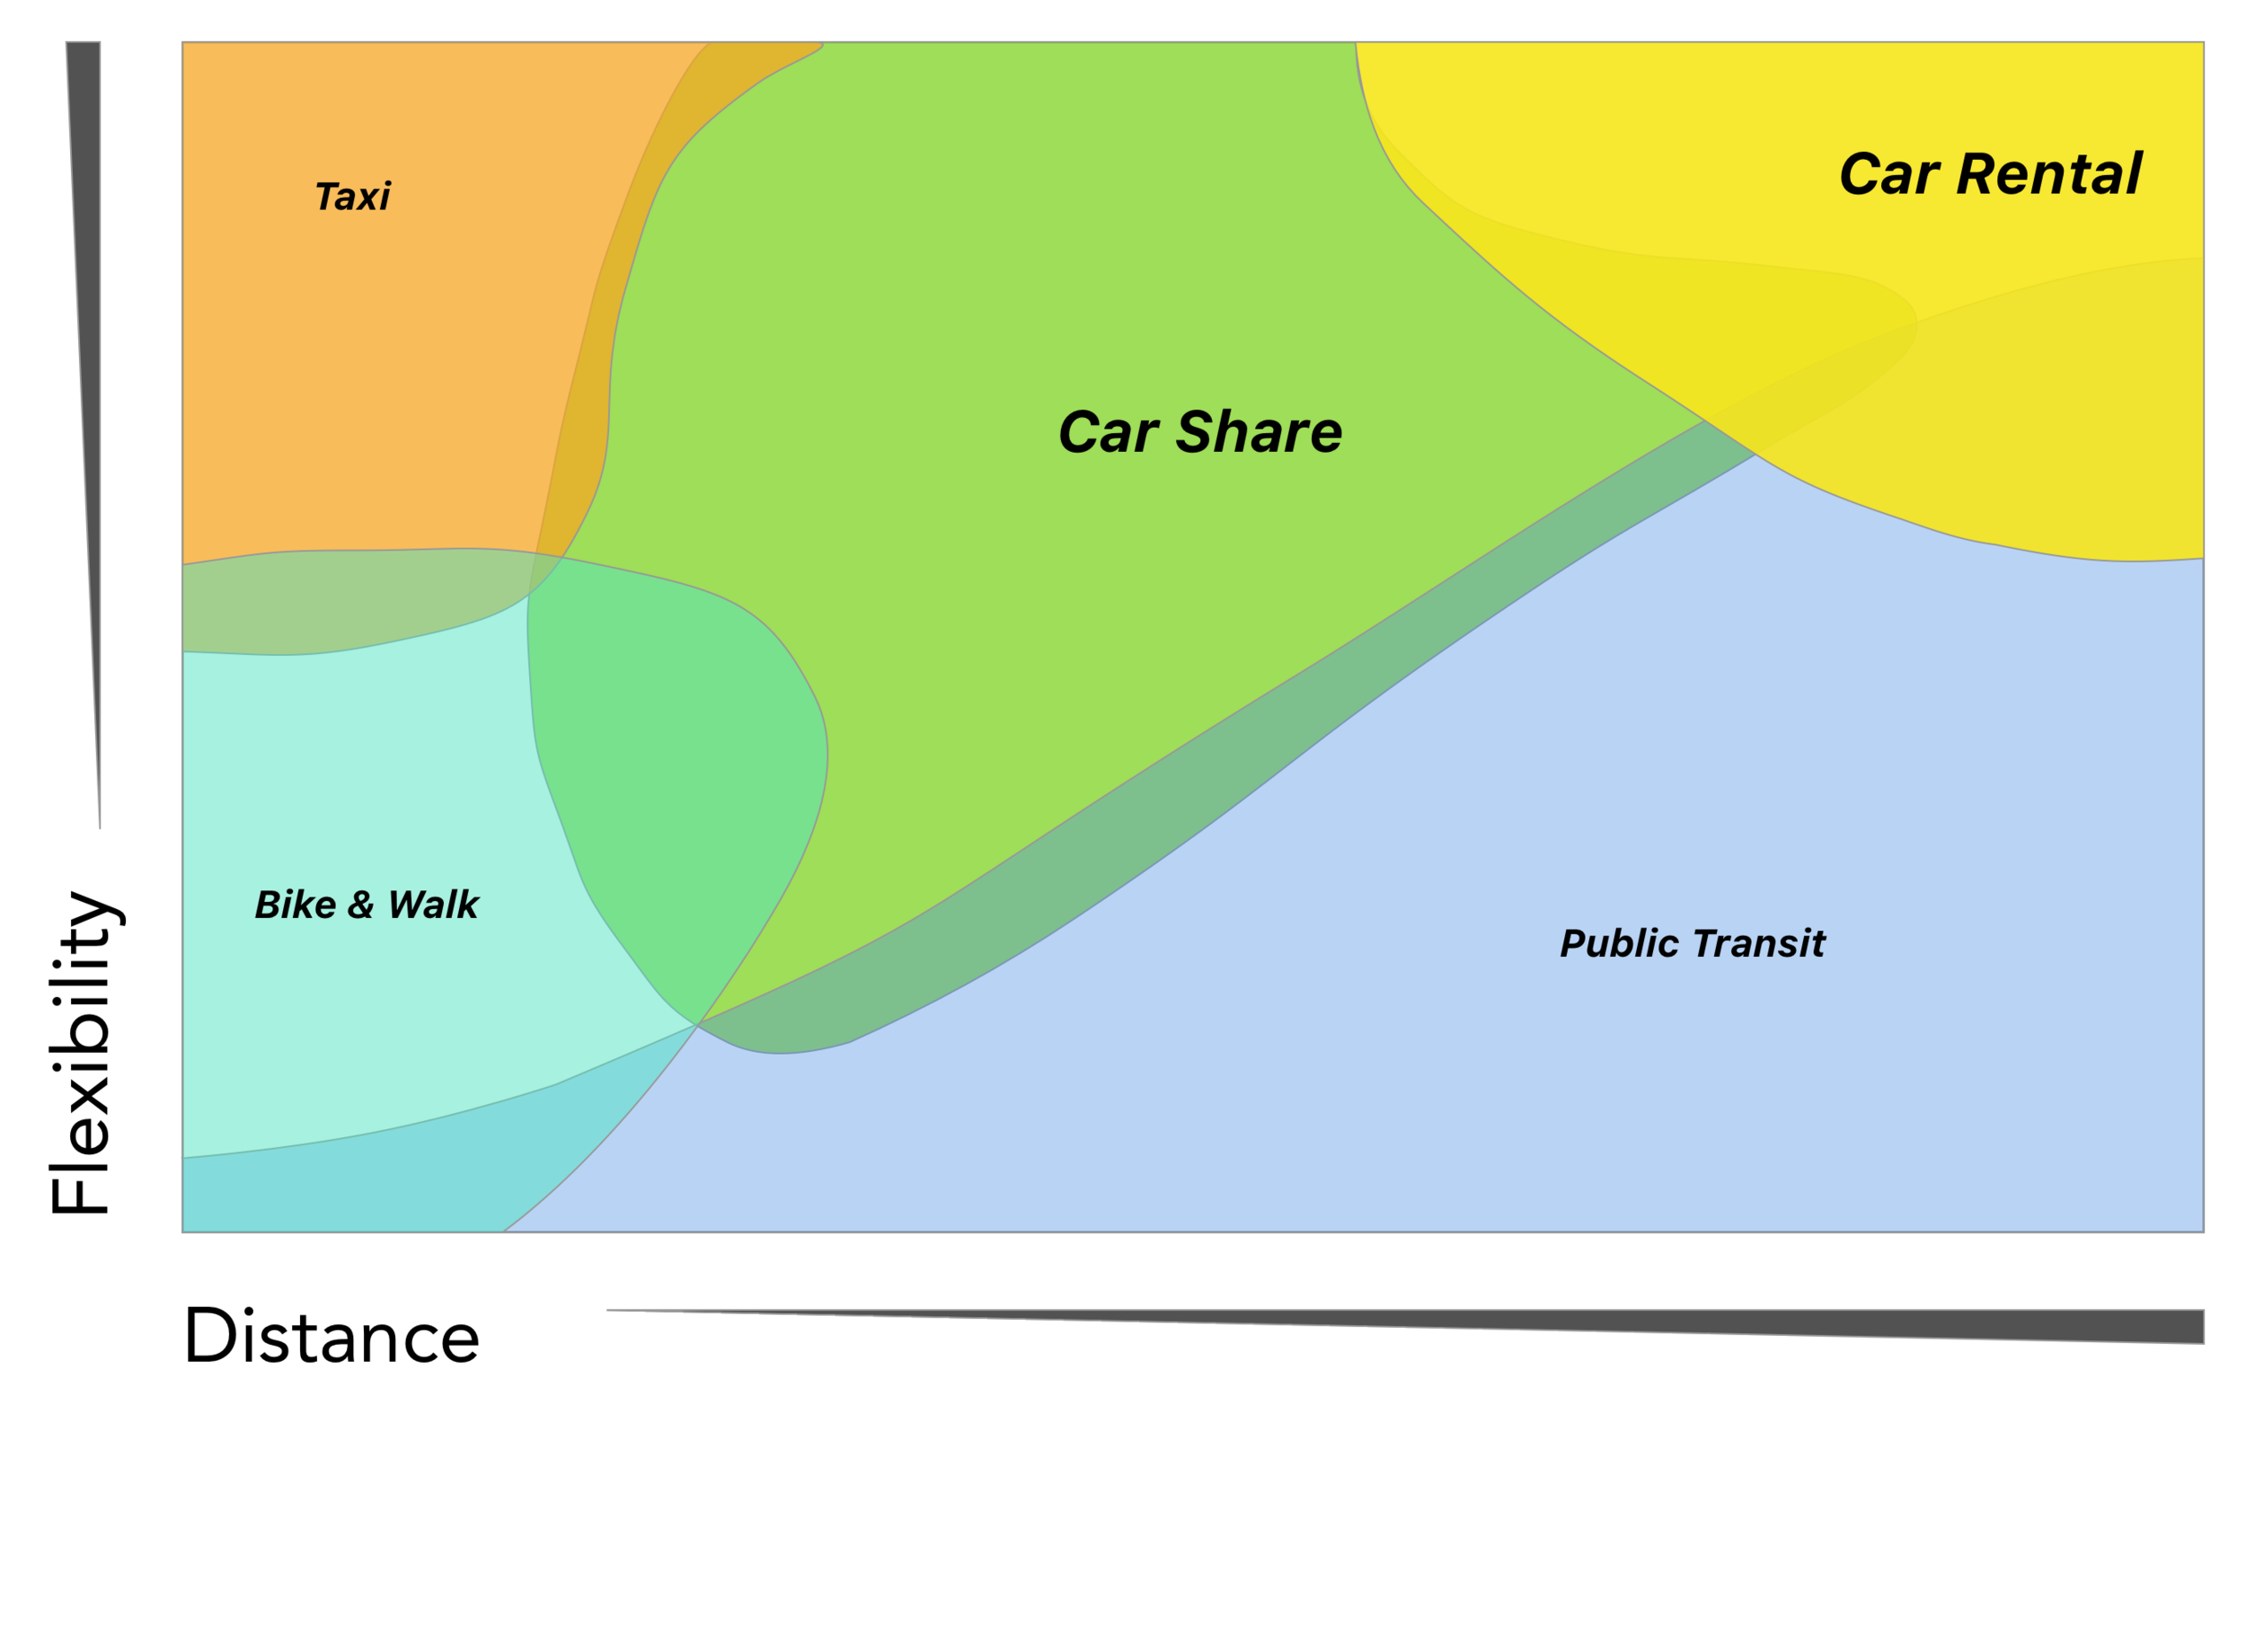 """This Mobility Matrix graphic was originally designed in 1974. It appeared in this report: Para-transit: Neglected options for urban mobility, Urban Institute. The term car share hadn't been invented at that time and was called """"Para-transit""""."""